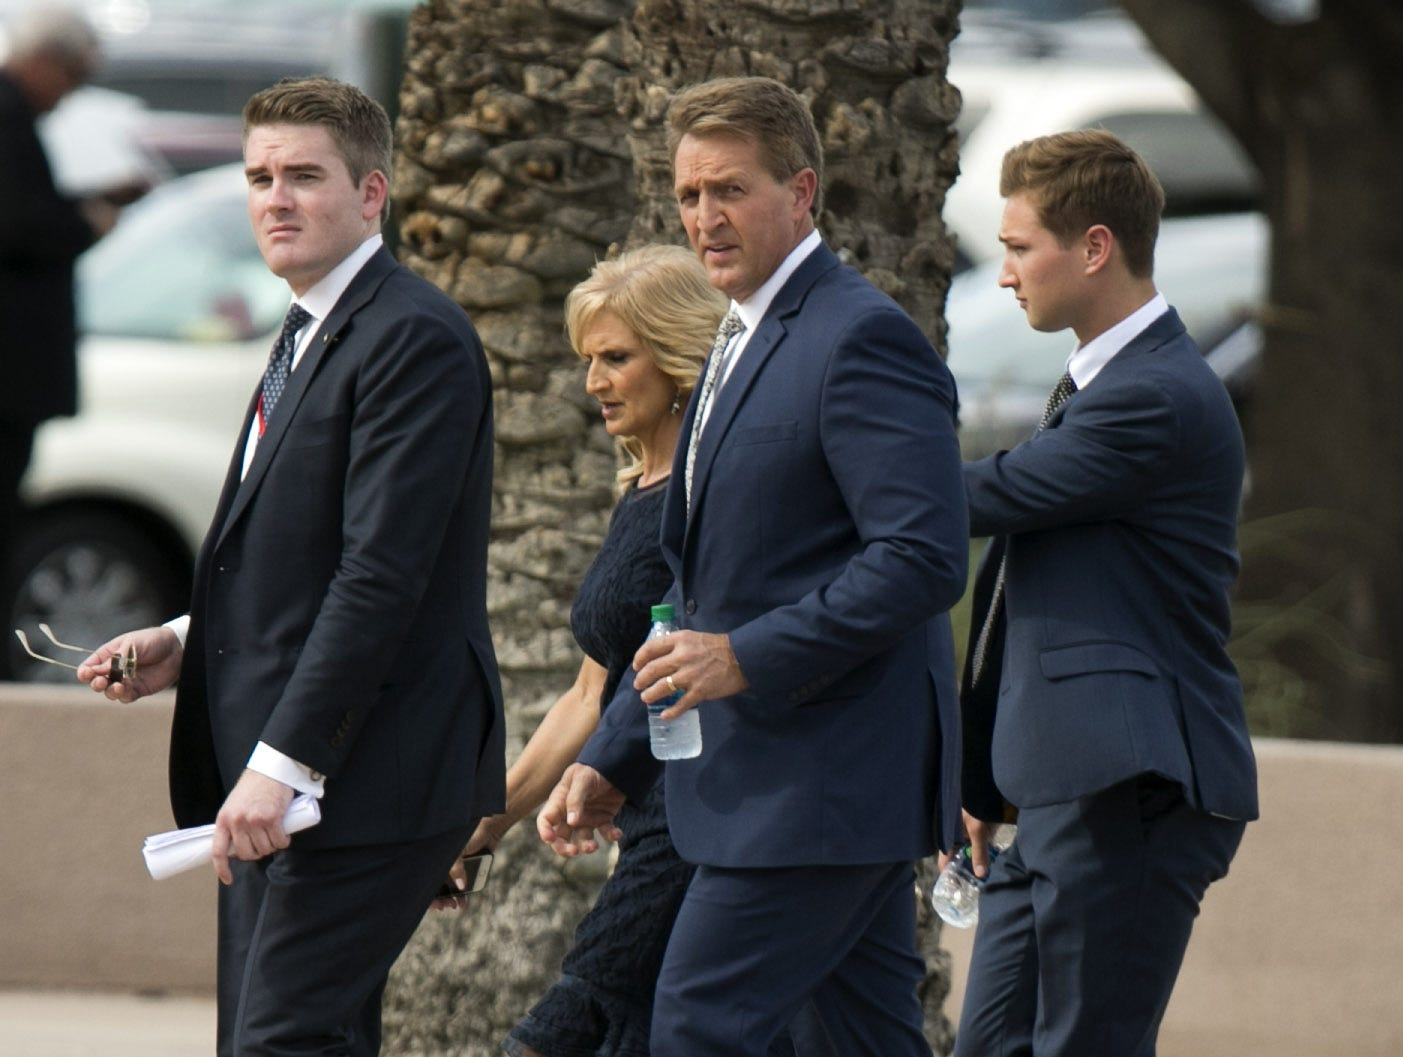 Senator Jeff Flake walks towards the entrance of North Phoenix Baptist Church before a memorial service for Senator John McCain in Phoenix Aug. 30, 2018.